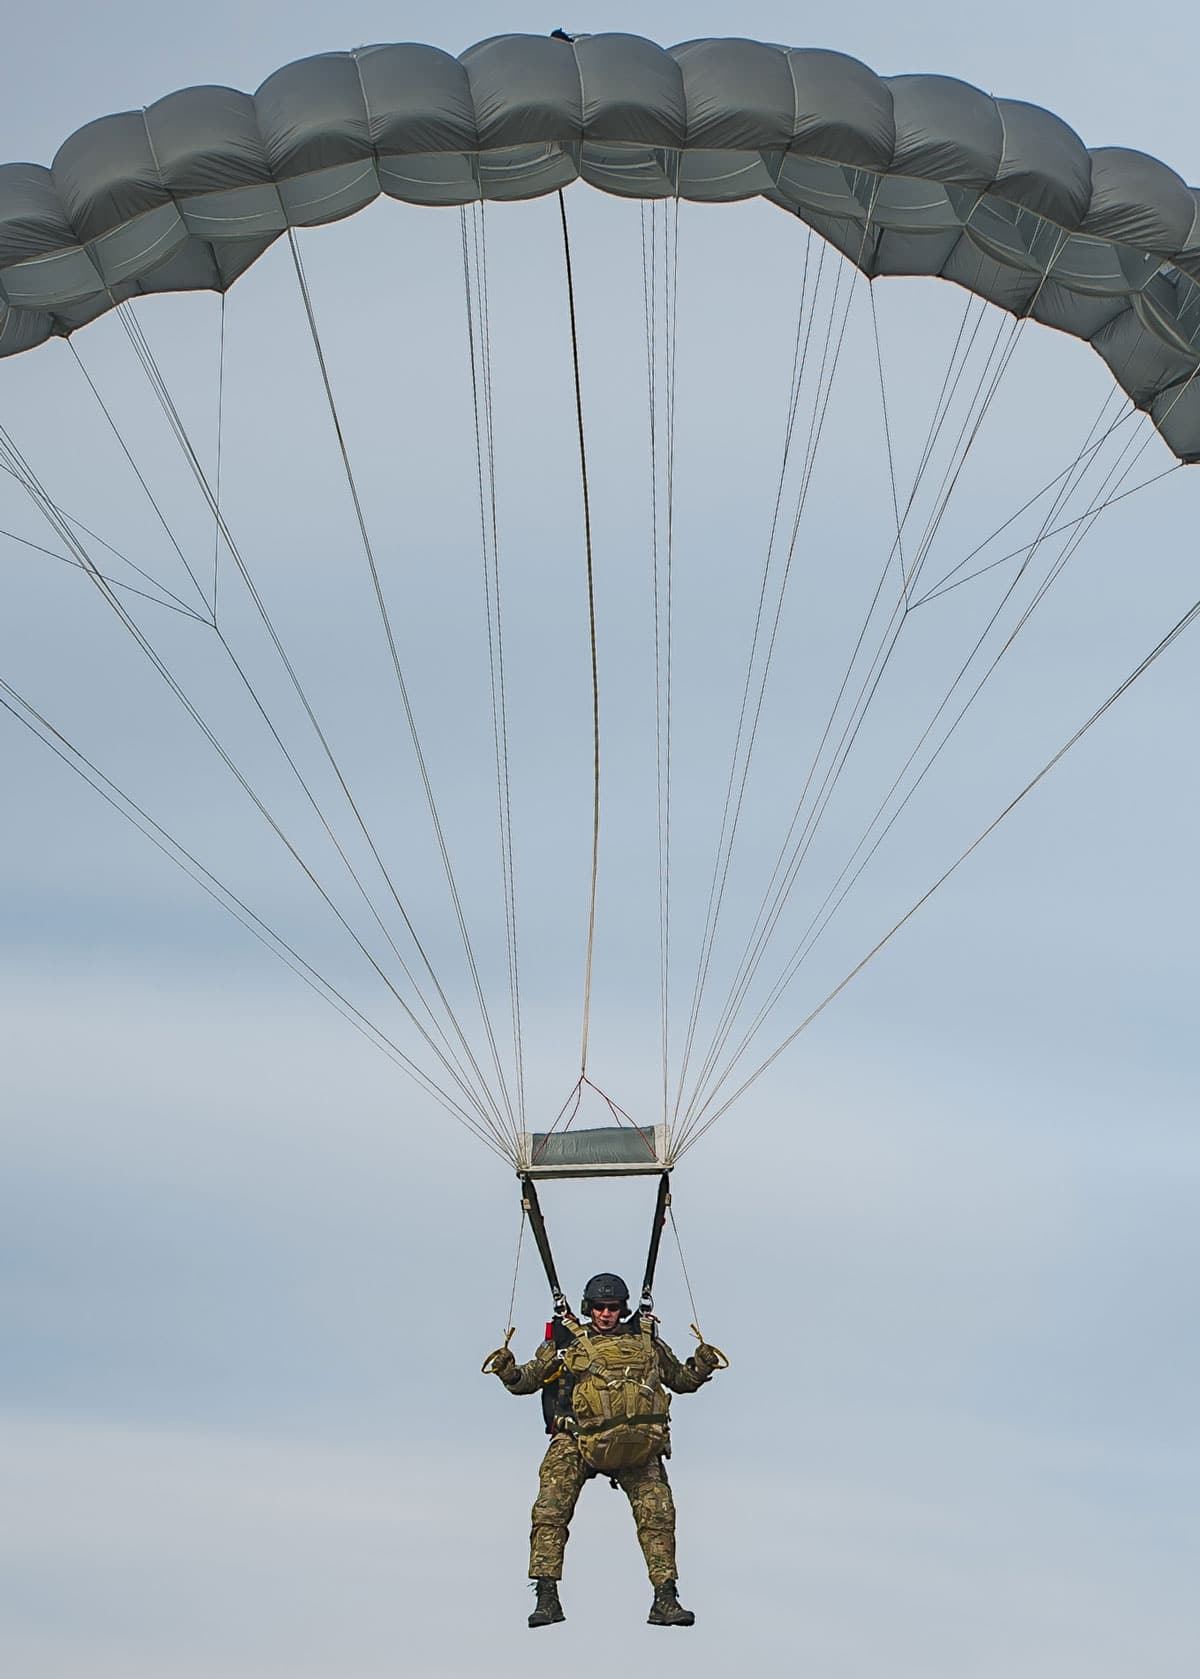 Chief Master Sgt. Mike Ziegler, 308th chief enlisted manager and pararescueman, parachutes to recover a simulated patient behind enemy territory.